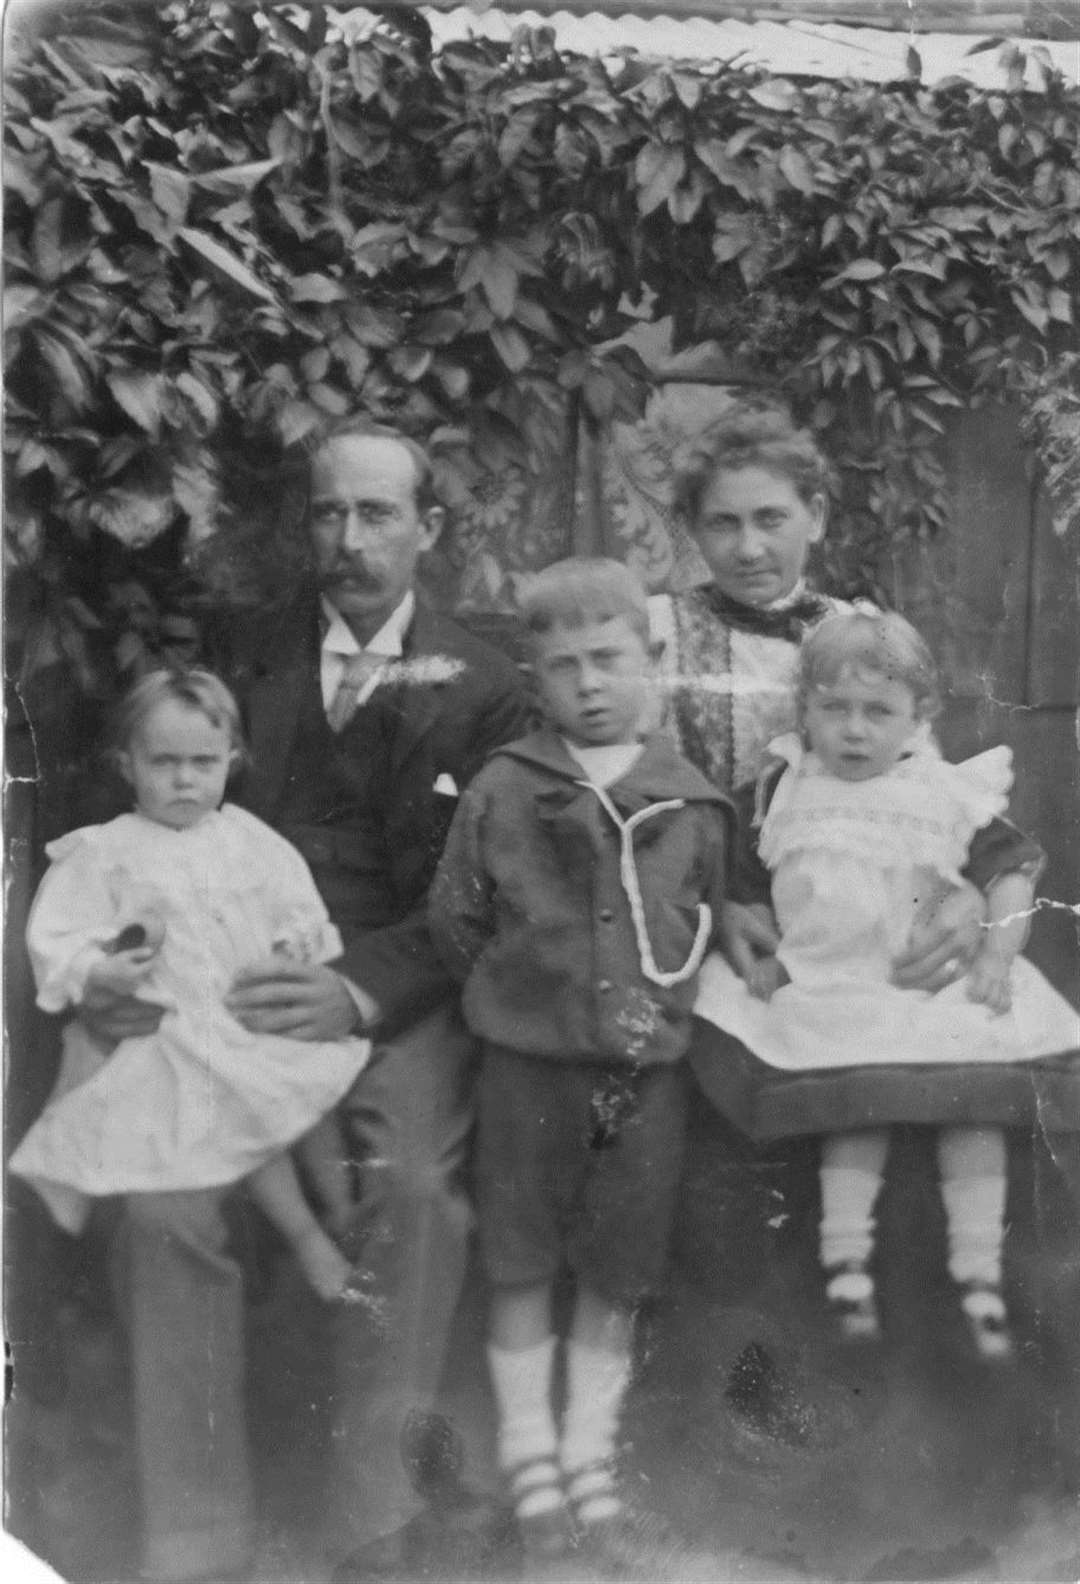 Family memories... Young Jack, aged six in his Sunday best with his parents John and Priscilla and sisters Ella and Bertha outside their Bakers Row cottage and right, the photograph of the cross initially placed on Jack's grave, the only evidence his parents had of their son's final resting place